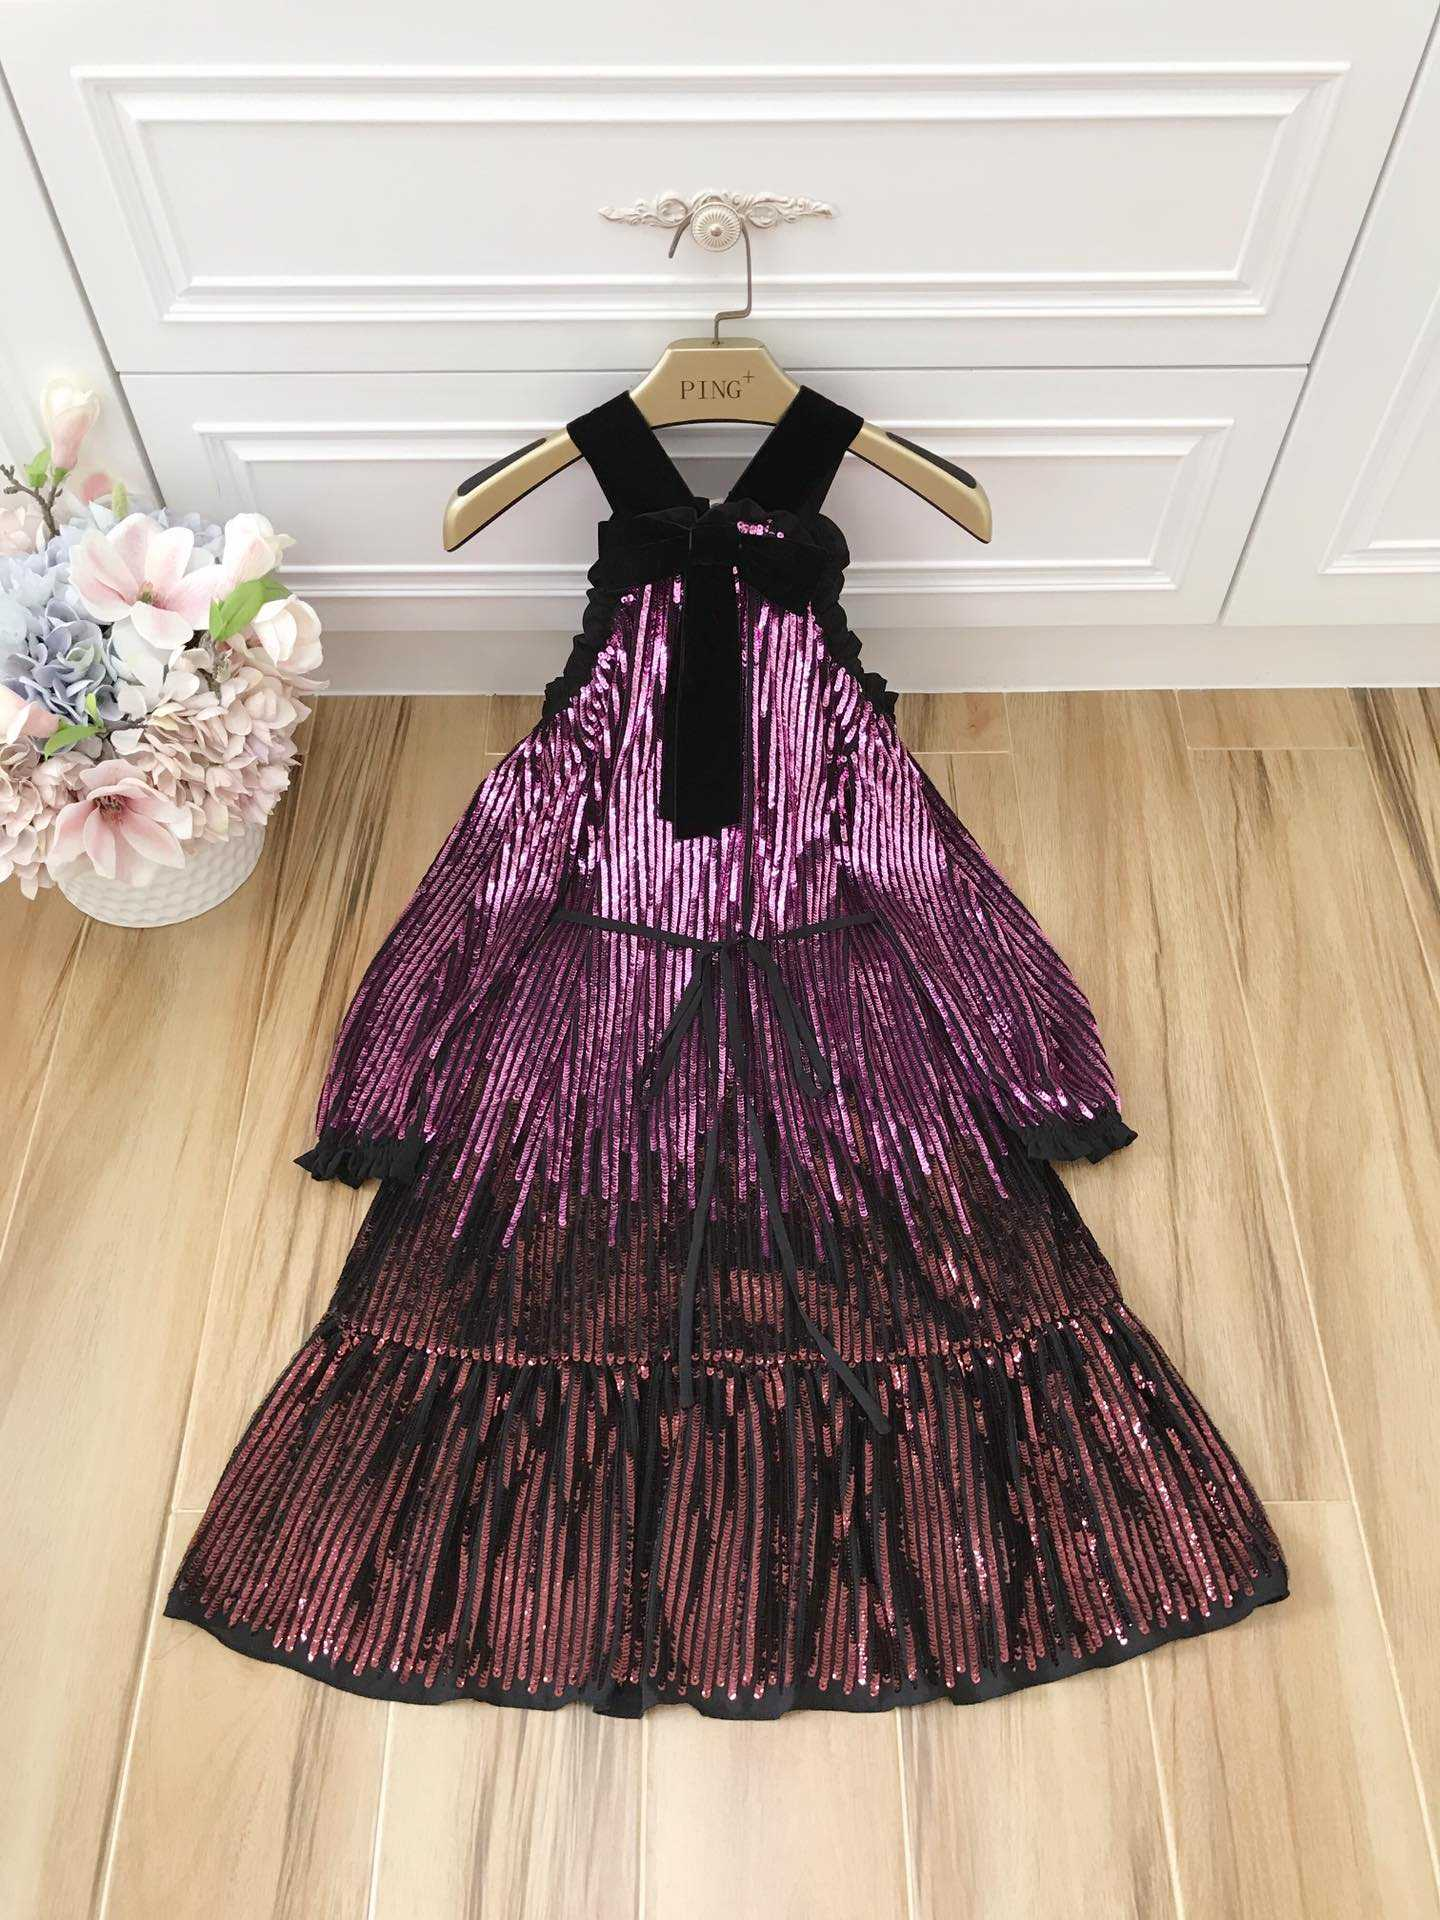 2019 spring and summer new women s off the shoulder strap dress pretty stylish